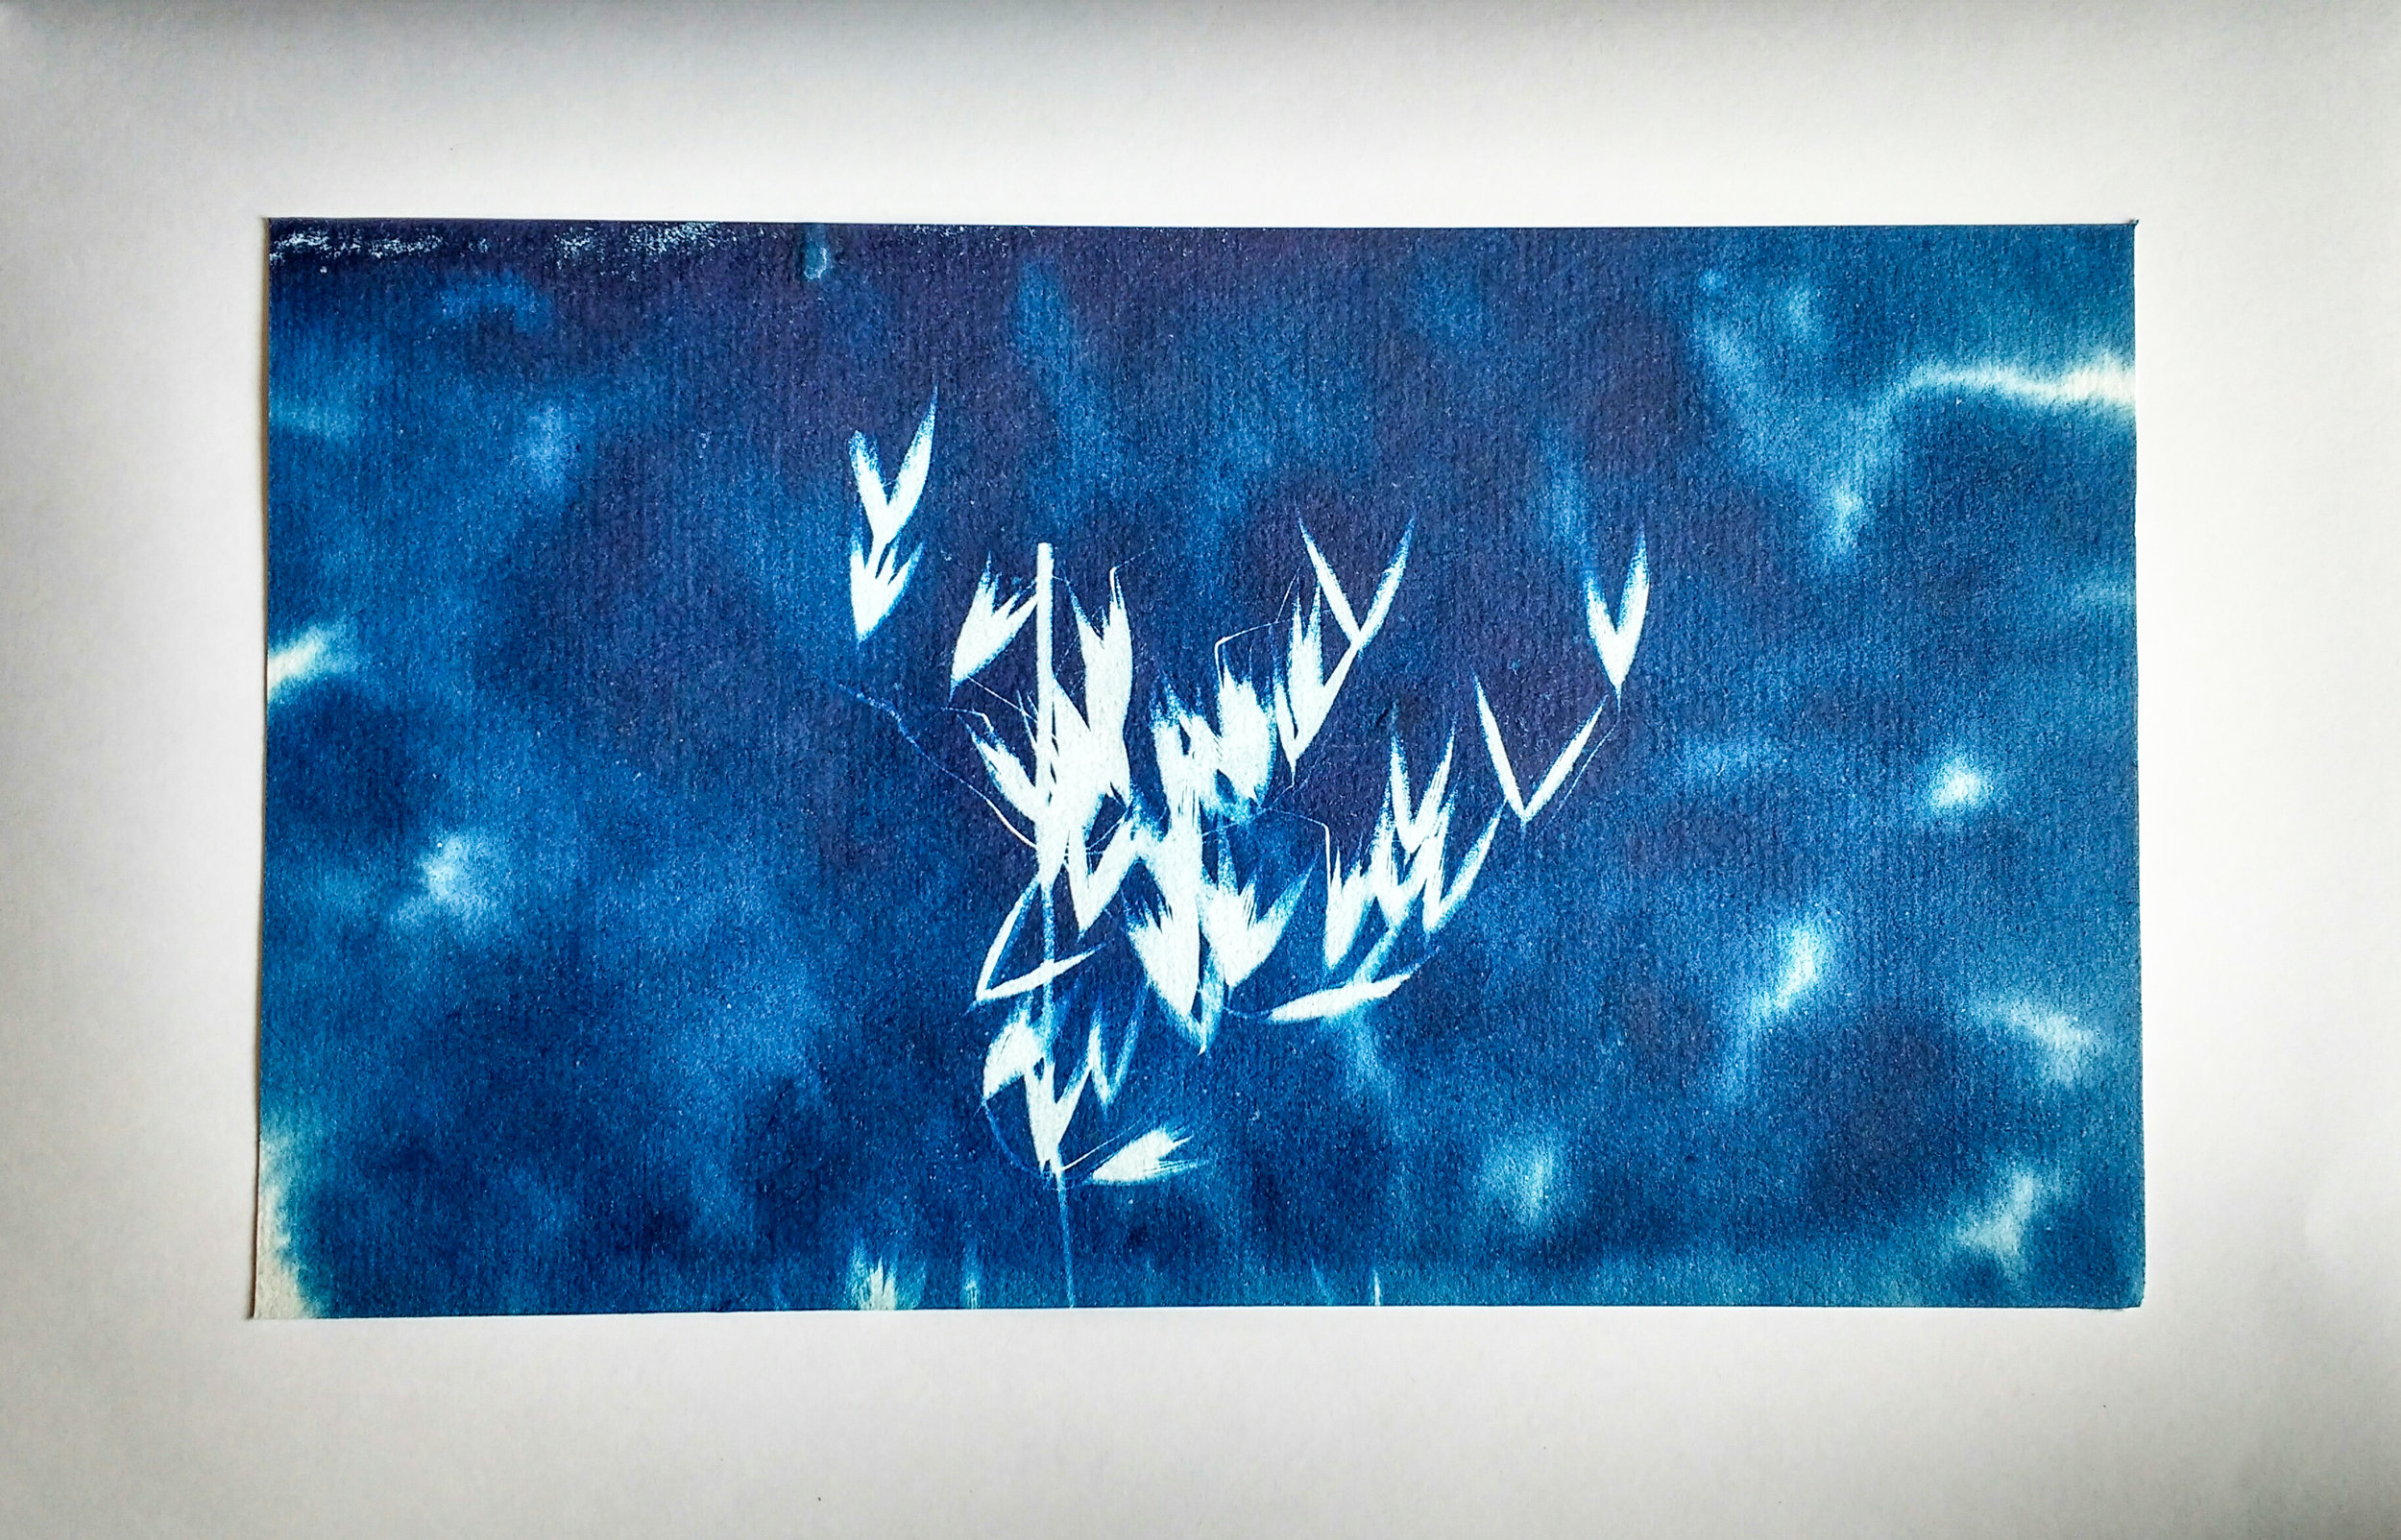 Cyanotype photogram made using a sponge instead of a regular brush